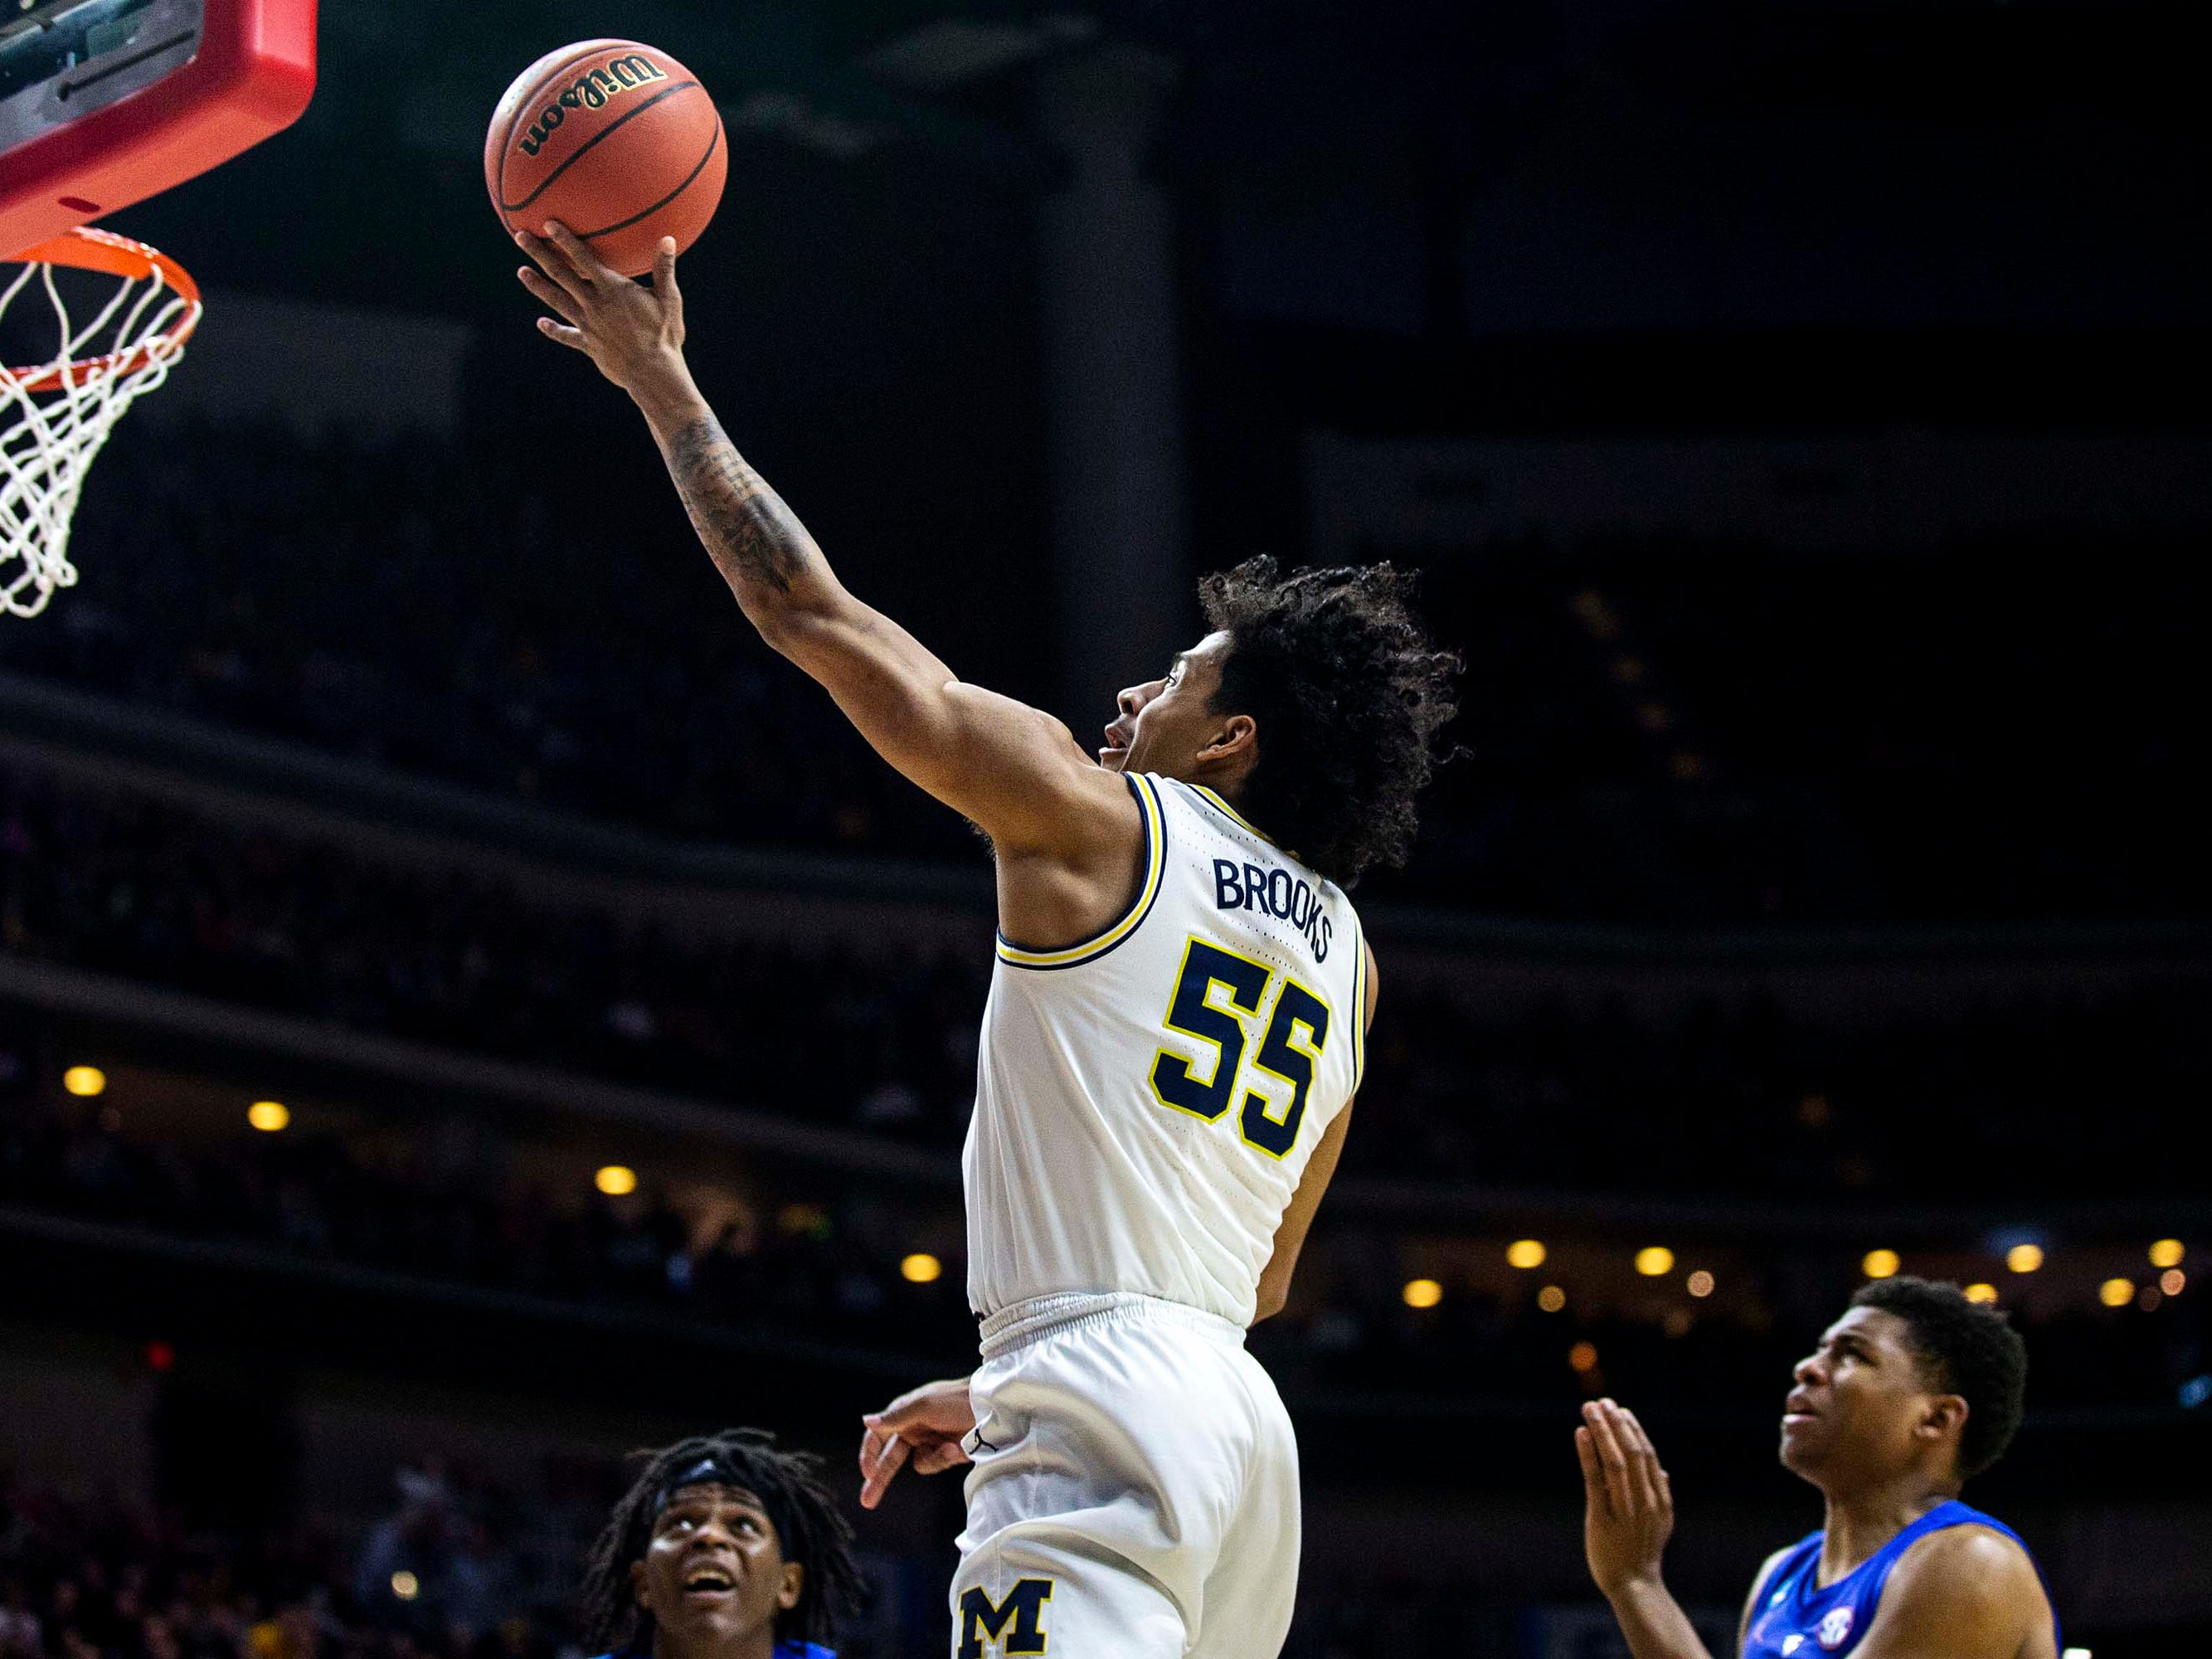 Michigan's Eli Brooks shoots the ball during the NCAA Tournament second-round match-up between Michigan and Florida on Saturday, March 23, 2019, in Wells Fargo Arena in Des Moines, Iowa.